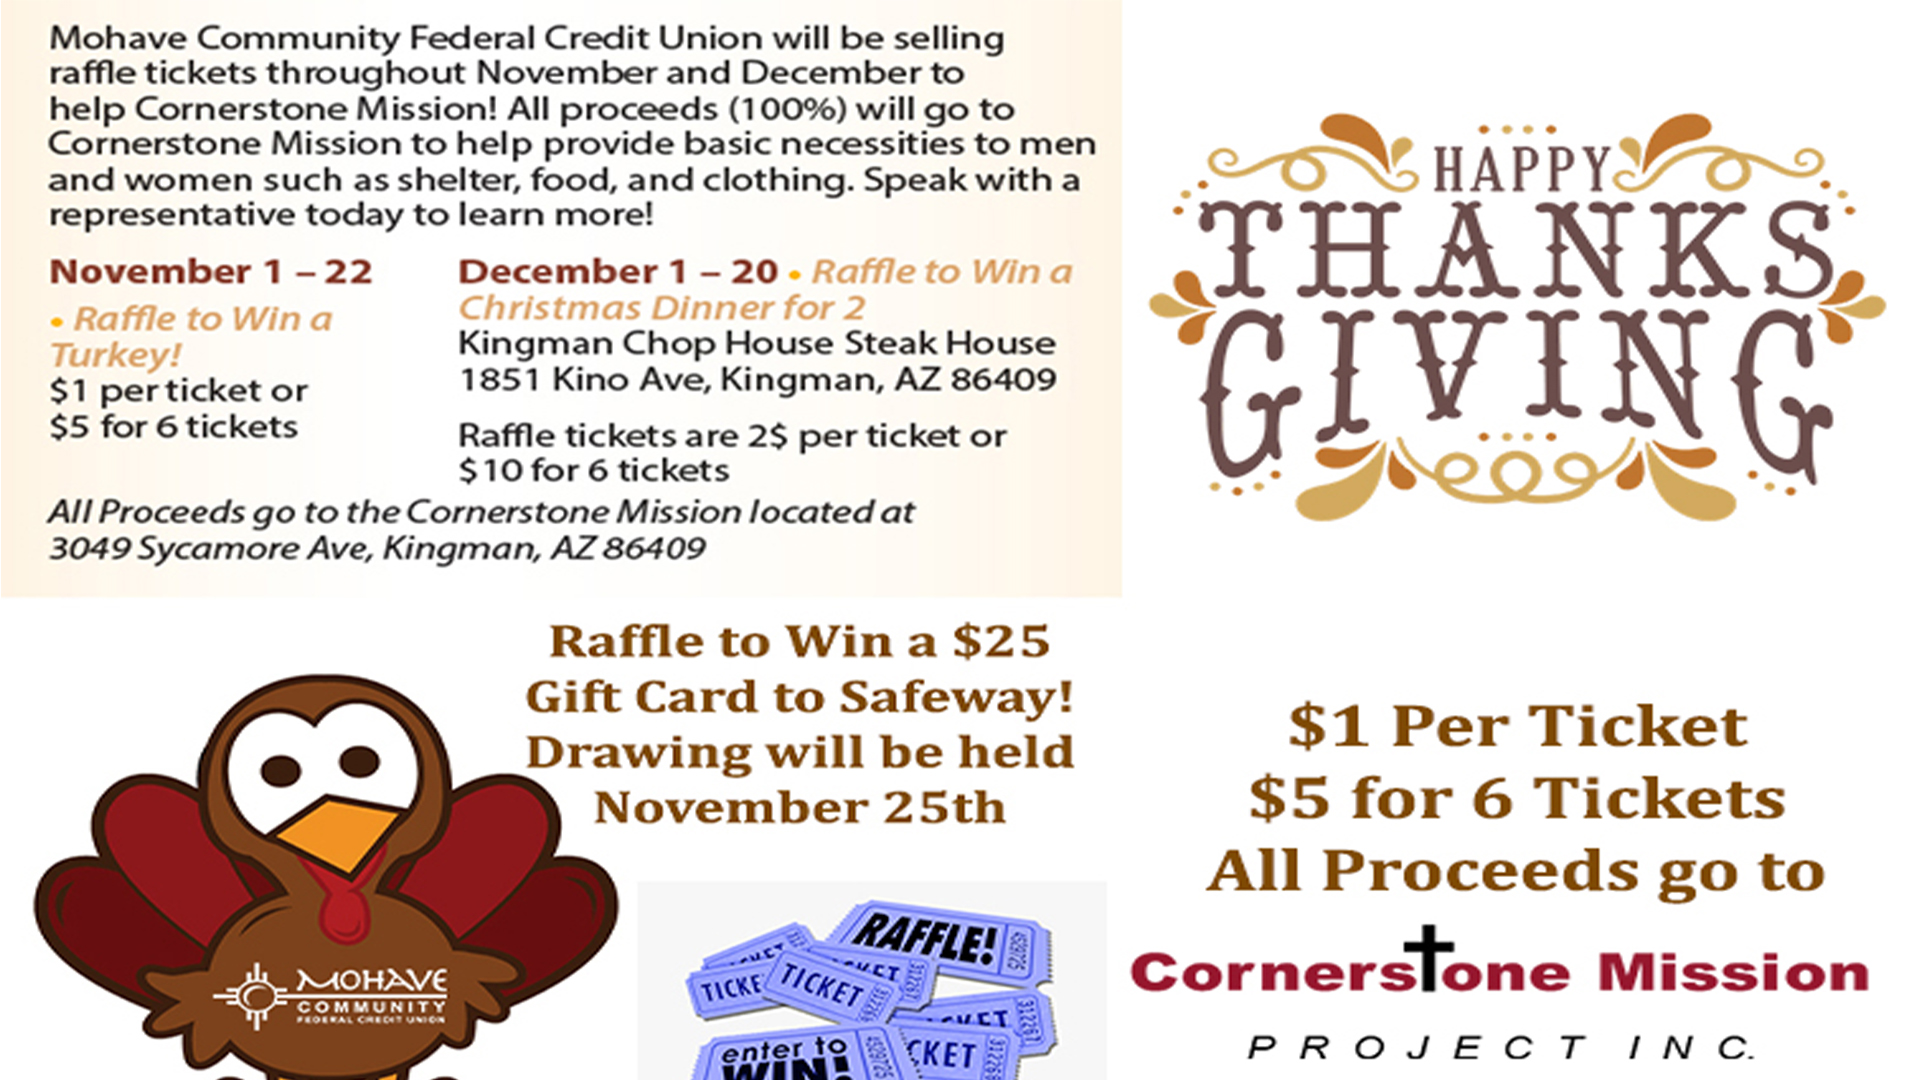 Raffle to win a $25 gift card to Safeway! Raffle tickets are $1 each or 6 for $5. All proceeds received from the sale of the raffle tickets go to Cornerstone Mission here in Kingman. For more information, please call 928-753-8000.